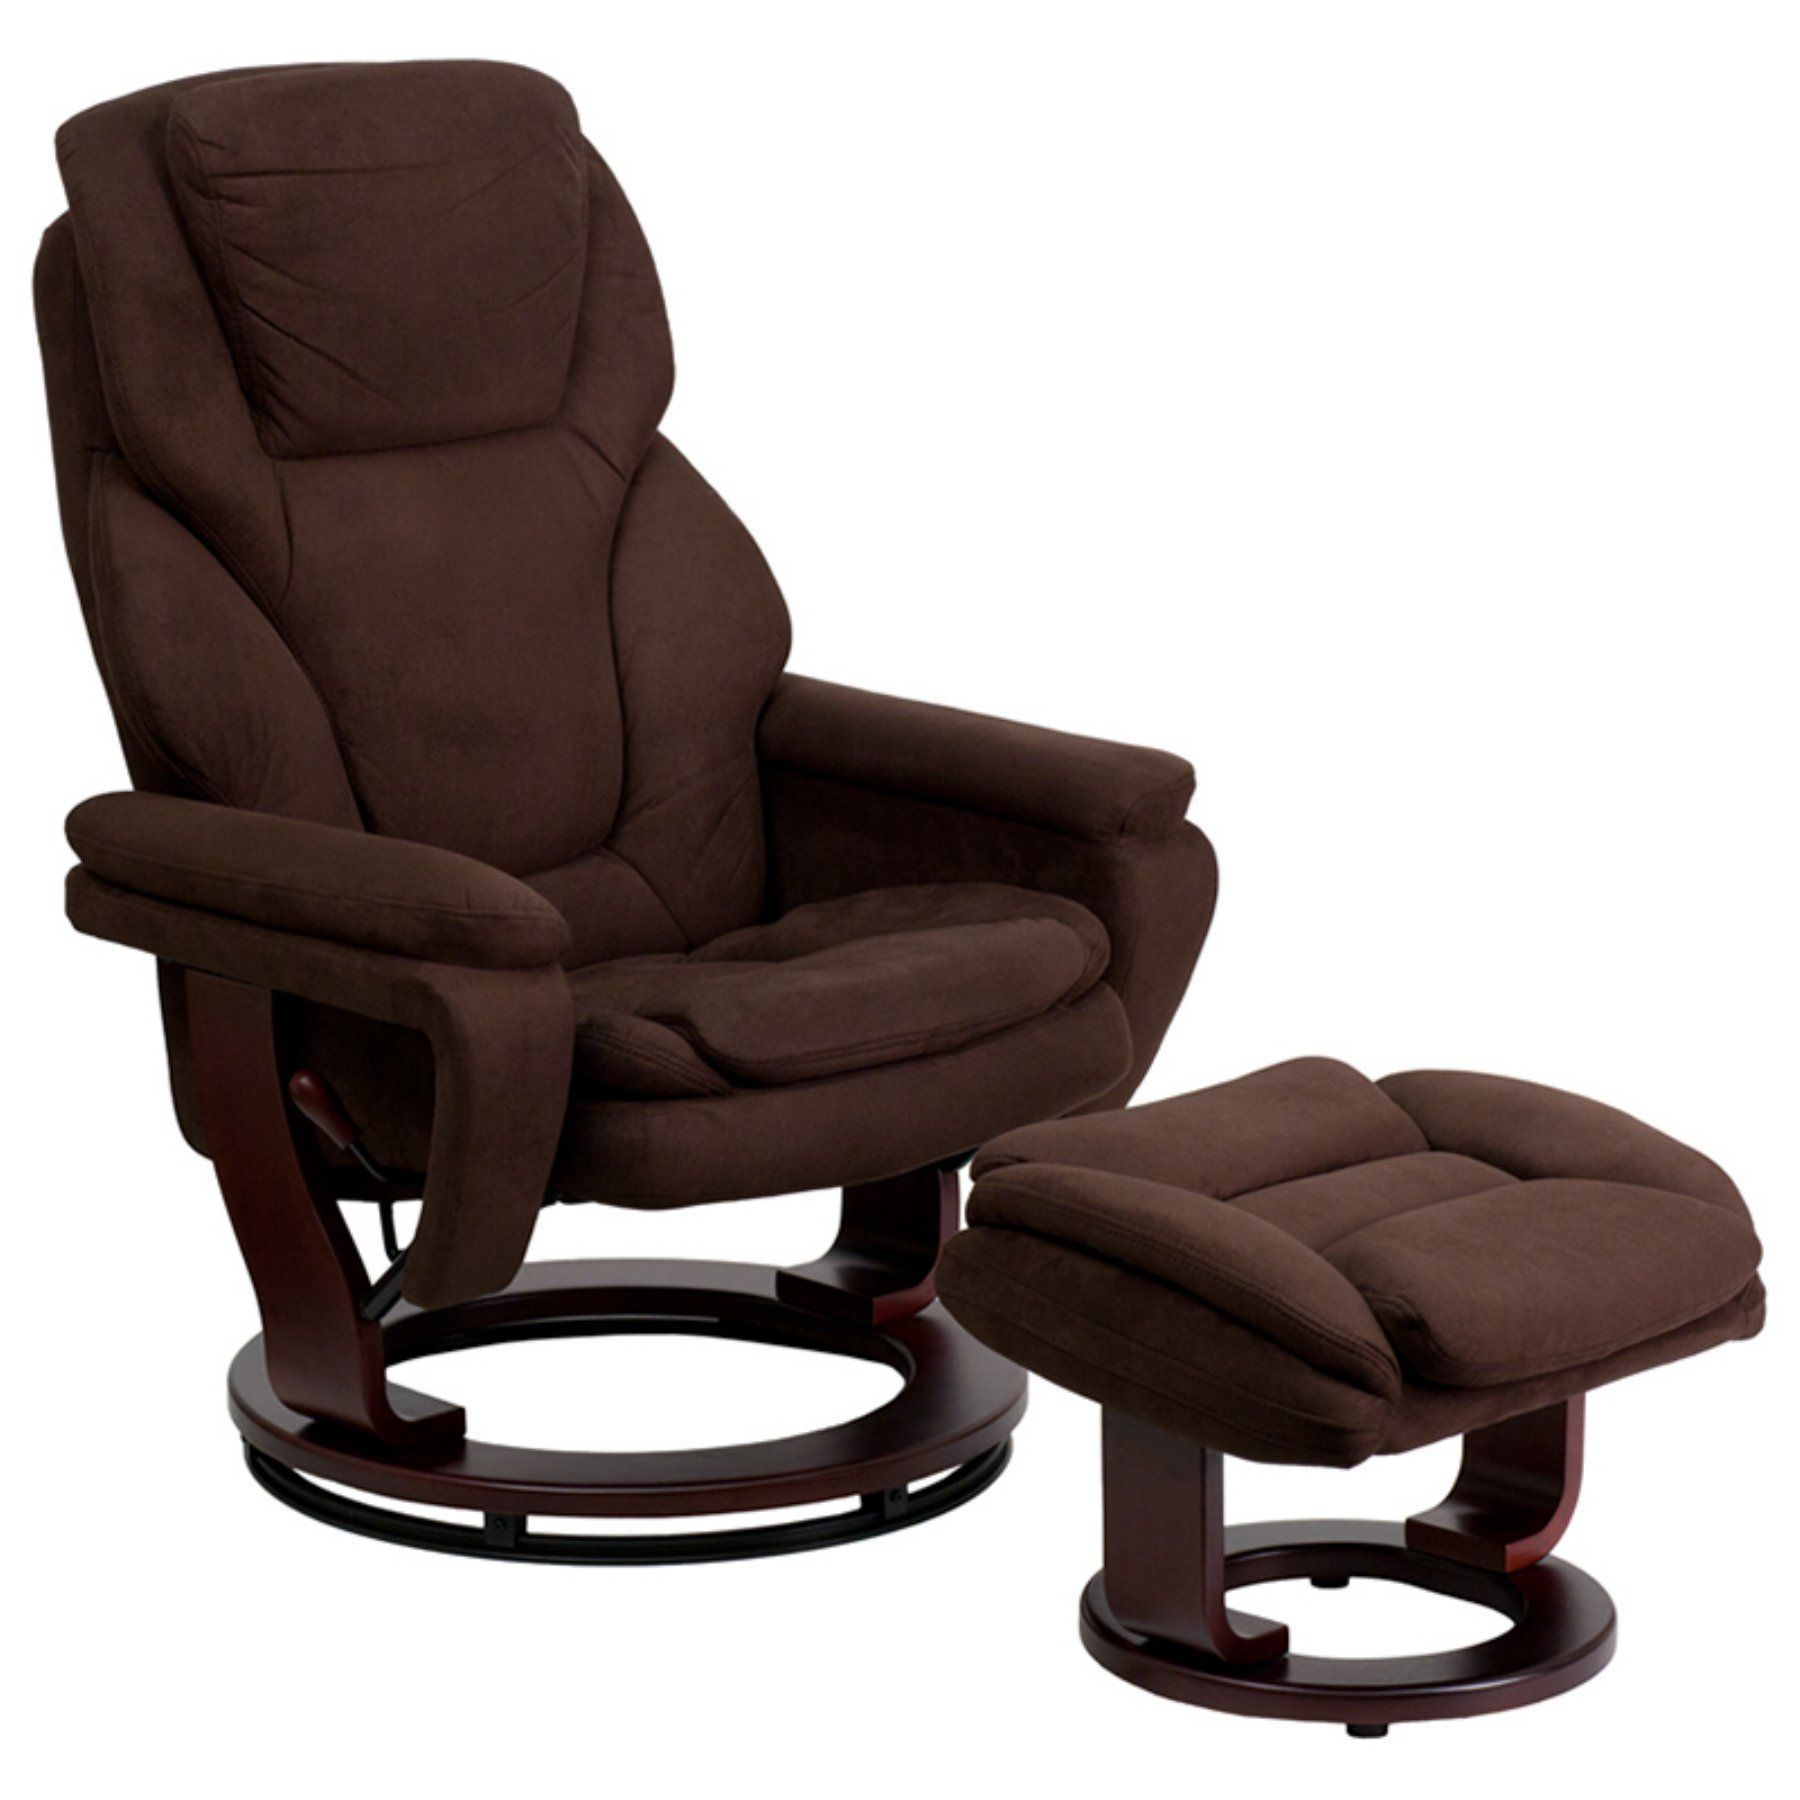 Astonishing Flash Furniture Microfiber Recliner And Ottoman With Wood Machost Co Dining Chair Design Ideas Machostcouk